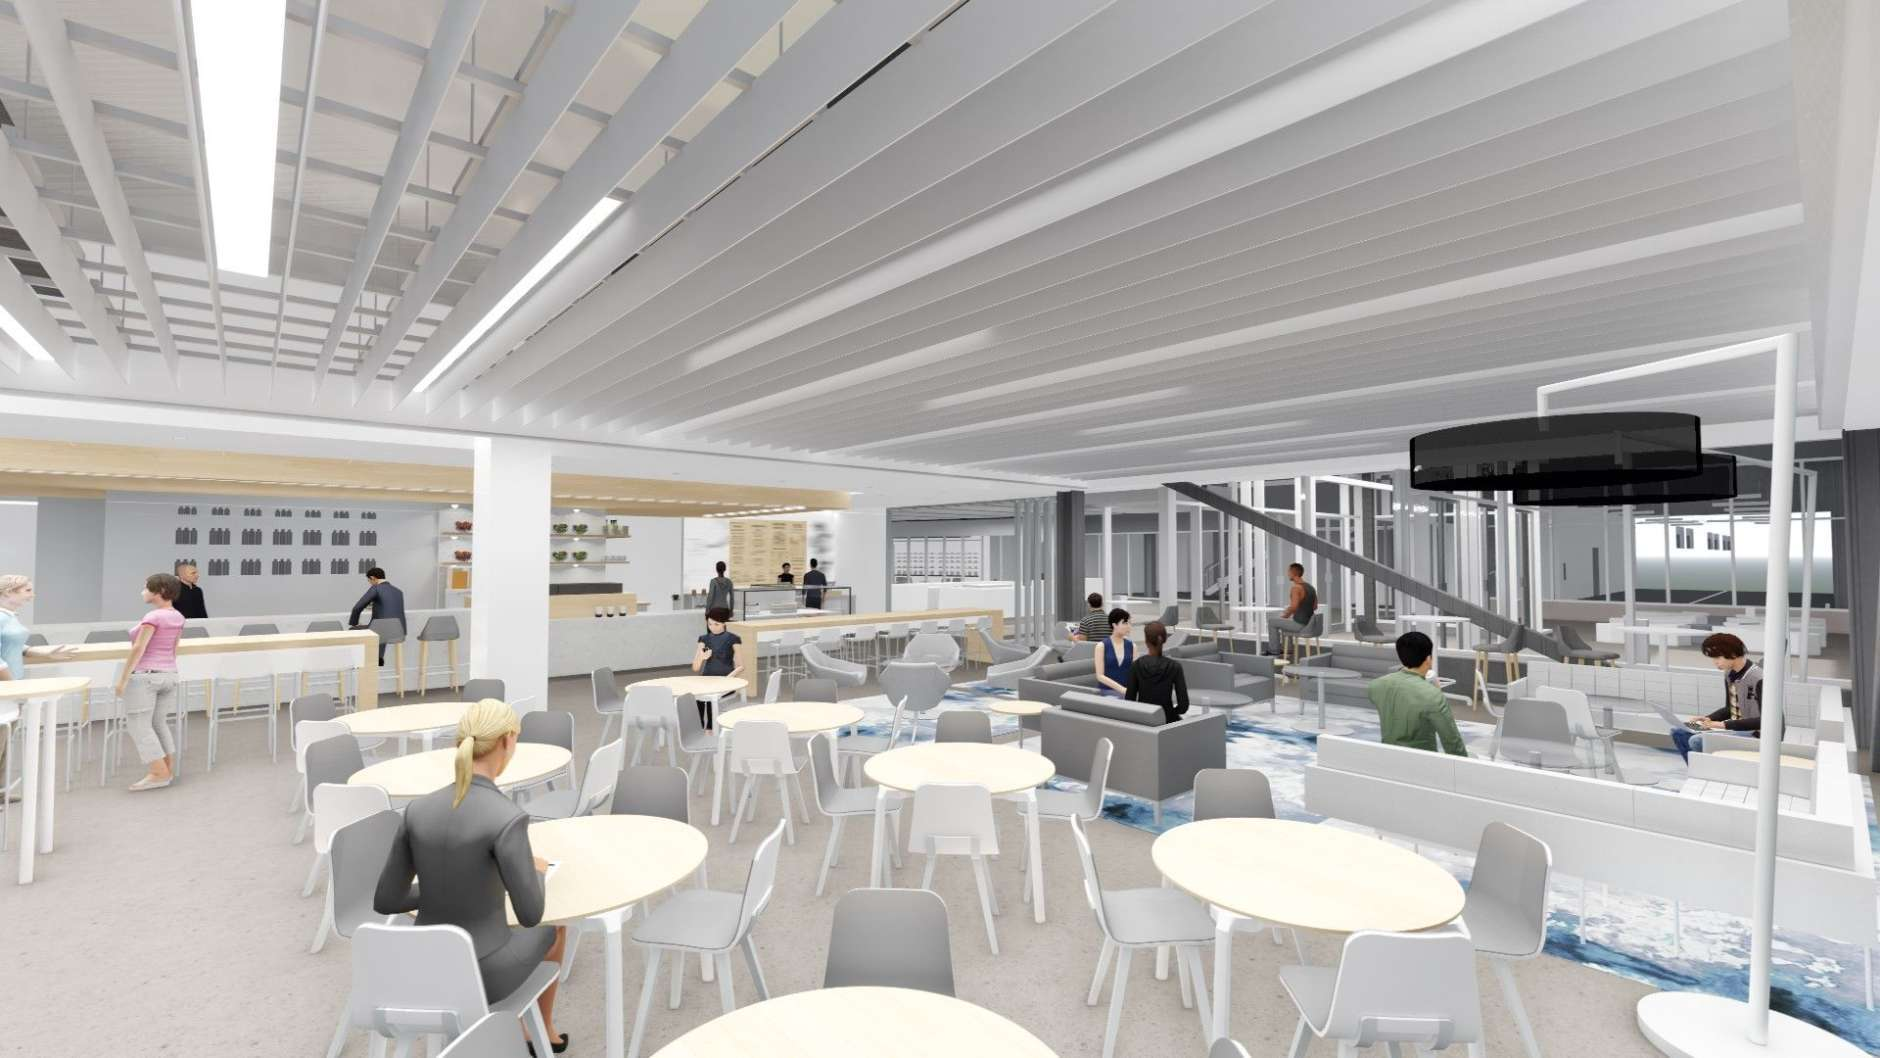 """""""I'm passionate about creating healthy foods that not only taste good, but also will meet the needs of people of all ages leading very active lives,"""" Mendelsohn said in a statement. (Courtesy HKS Architects)"""